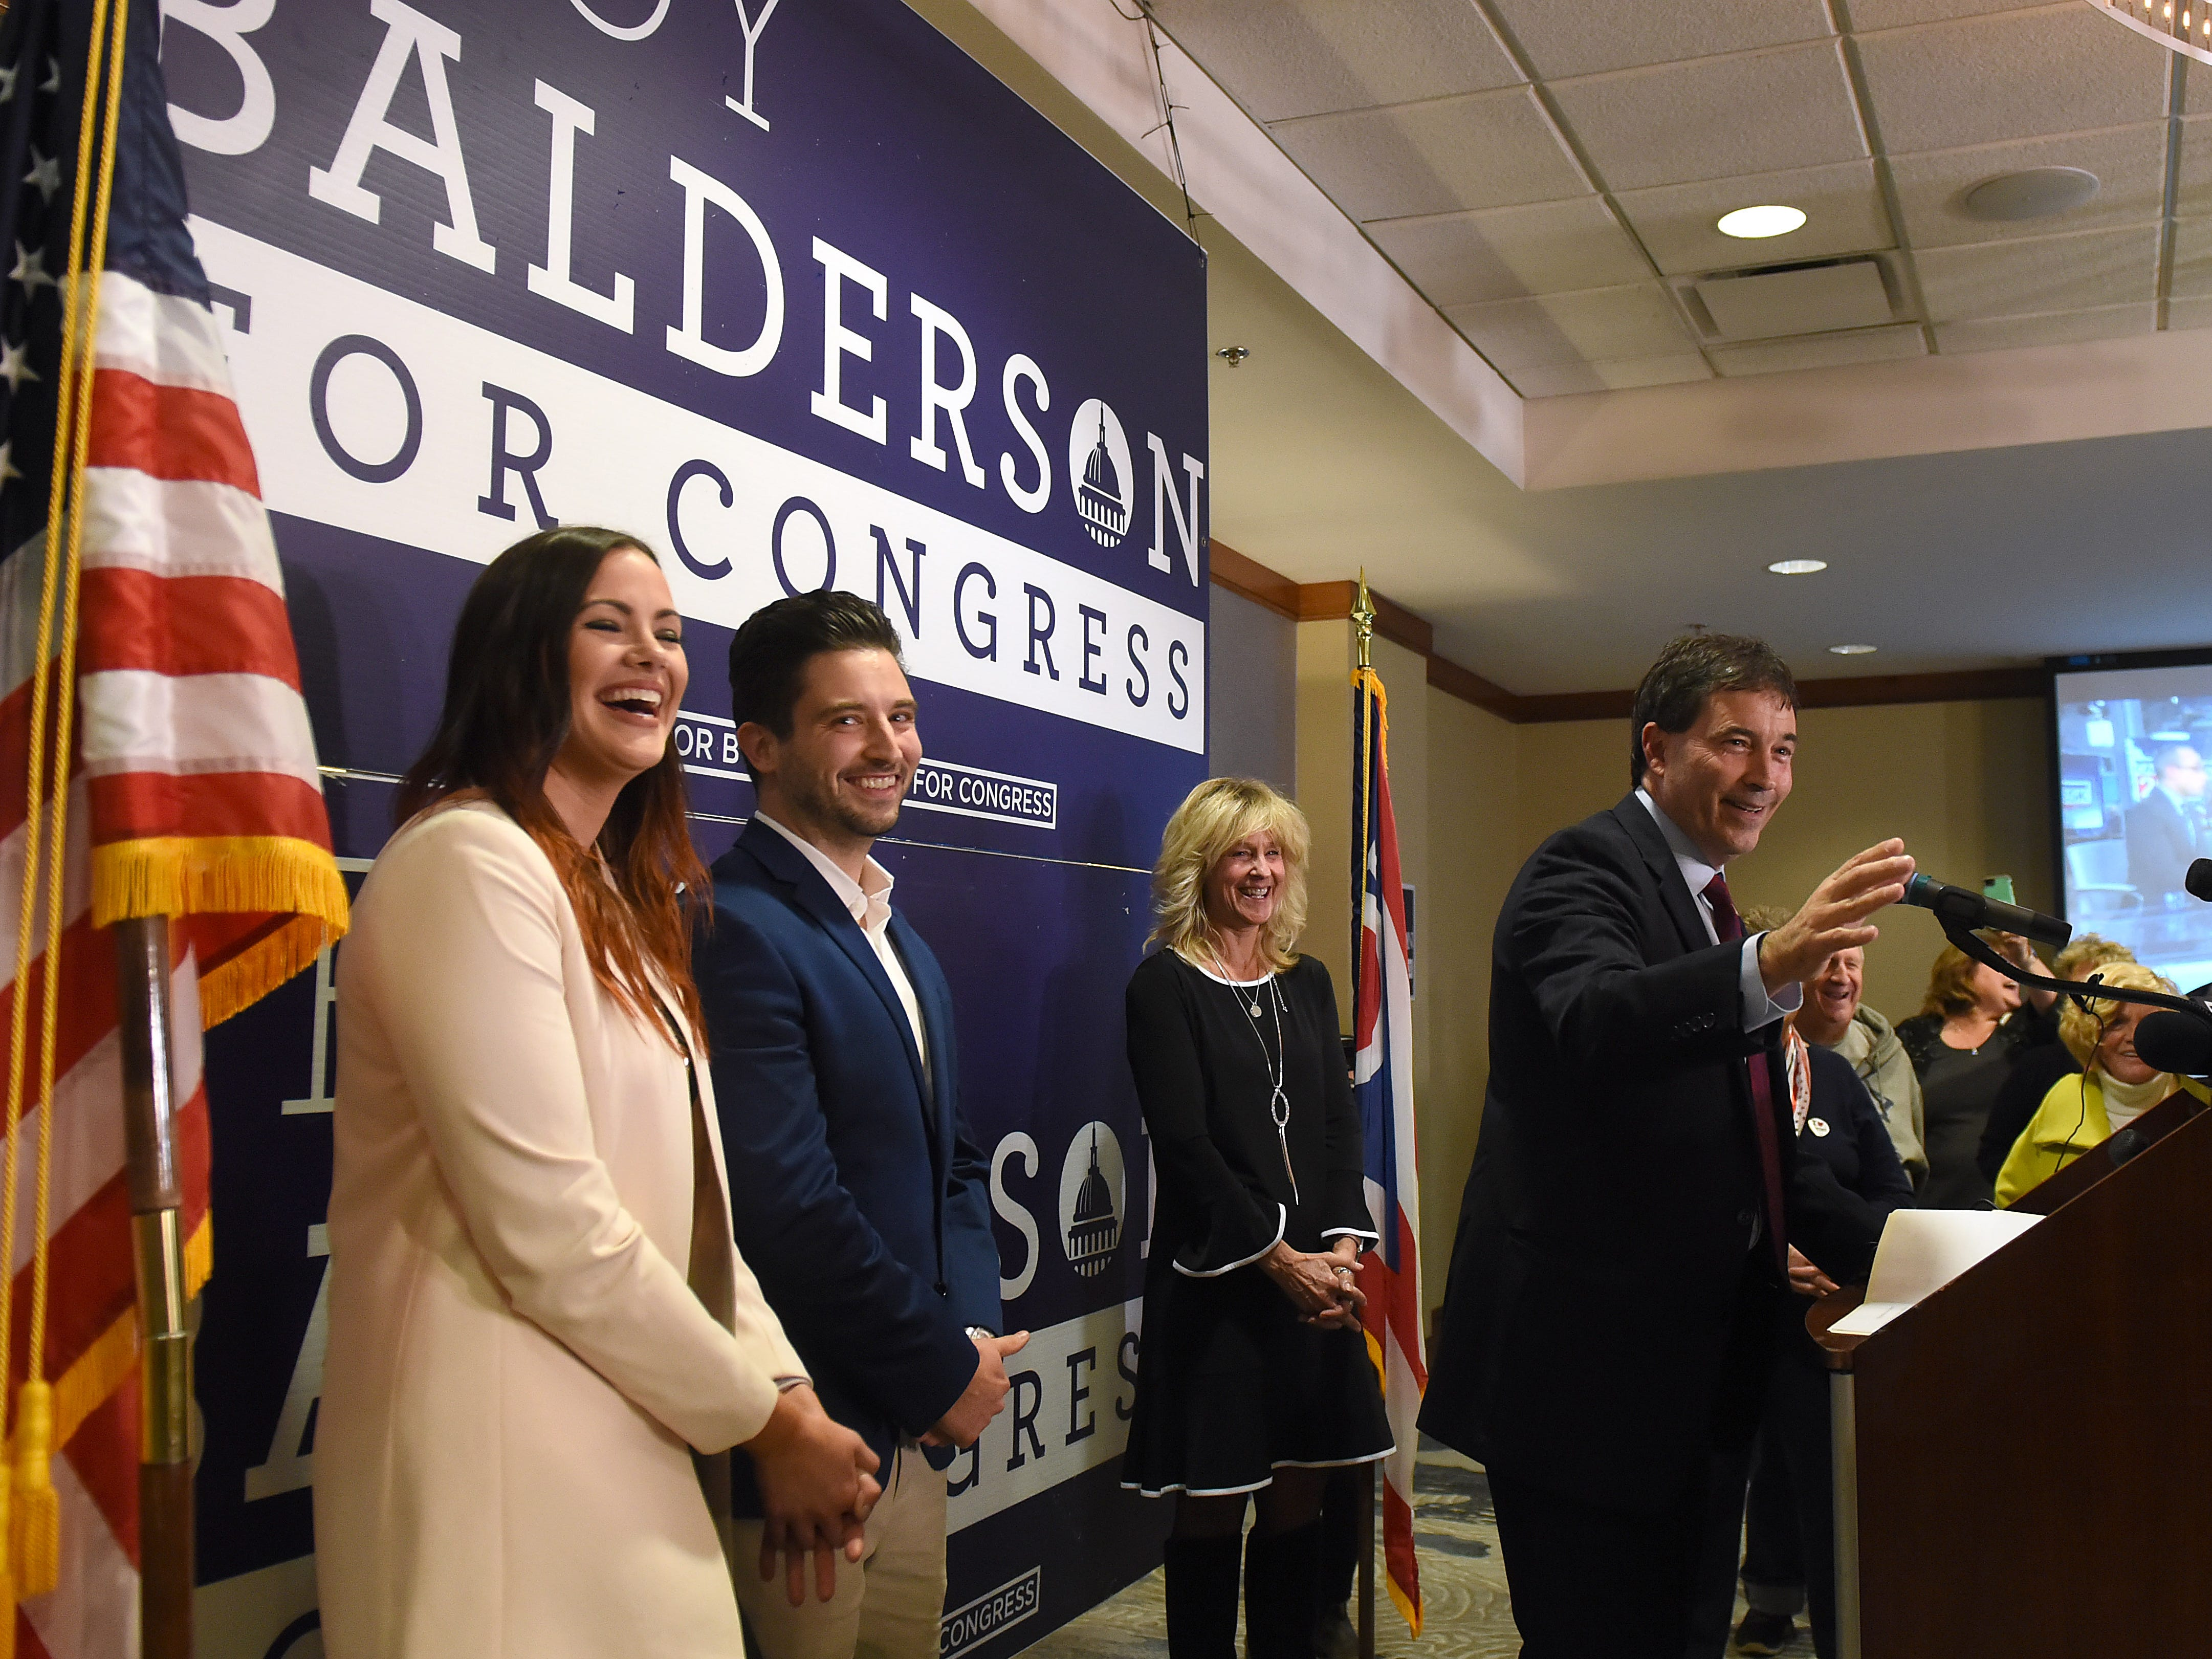 Congressman Troy Balderson thanks his supporters after winning Ohio's 12th district on Tuesday, Nov. 6, 2018. Future daughter-in-law Chelsea Gallagher, son Joshua Balderson, and girlfriend Melanie Straker joined Balderson on stage at his election night event at the DoubleTree in Newark